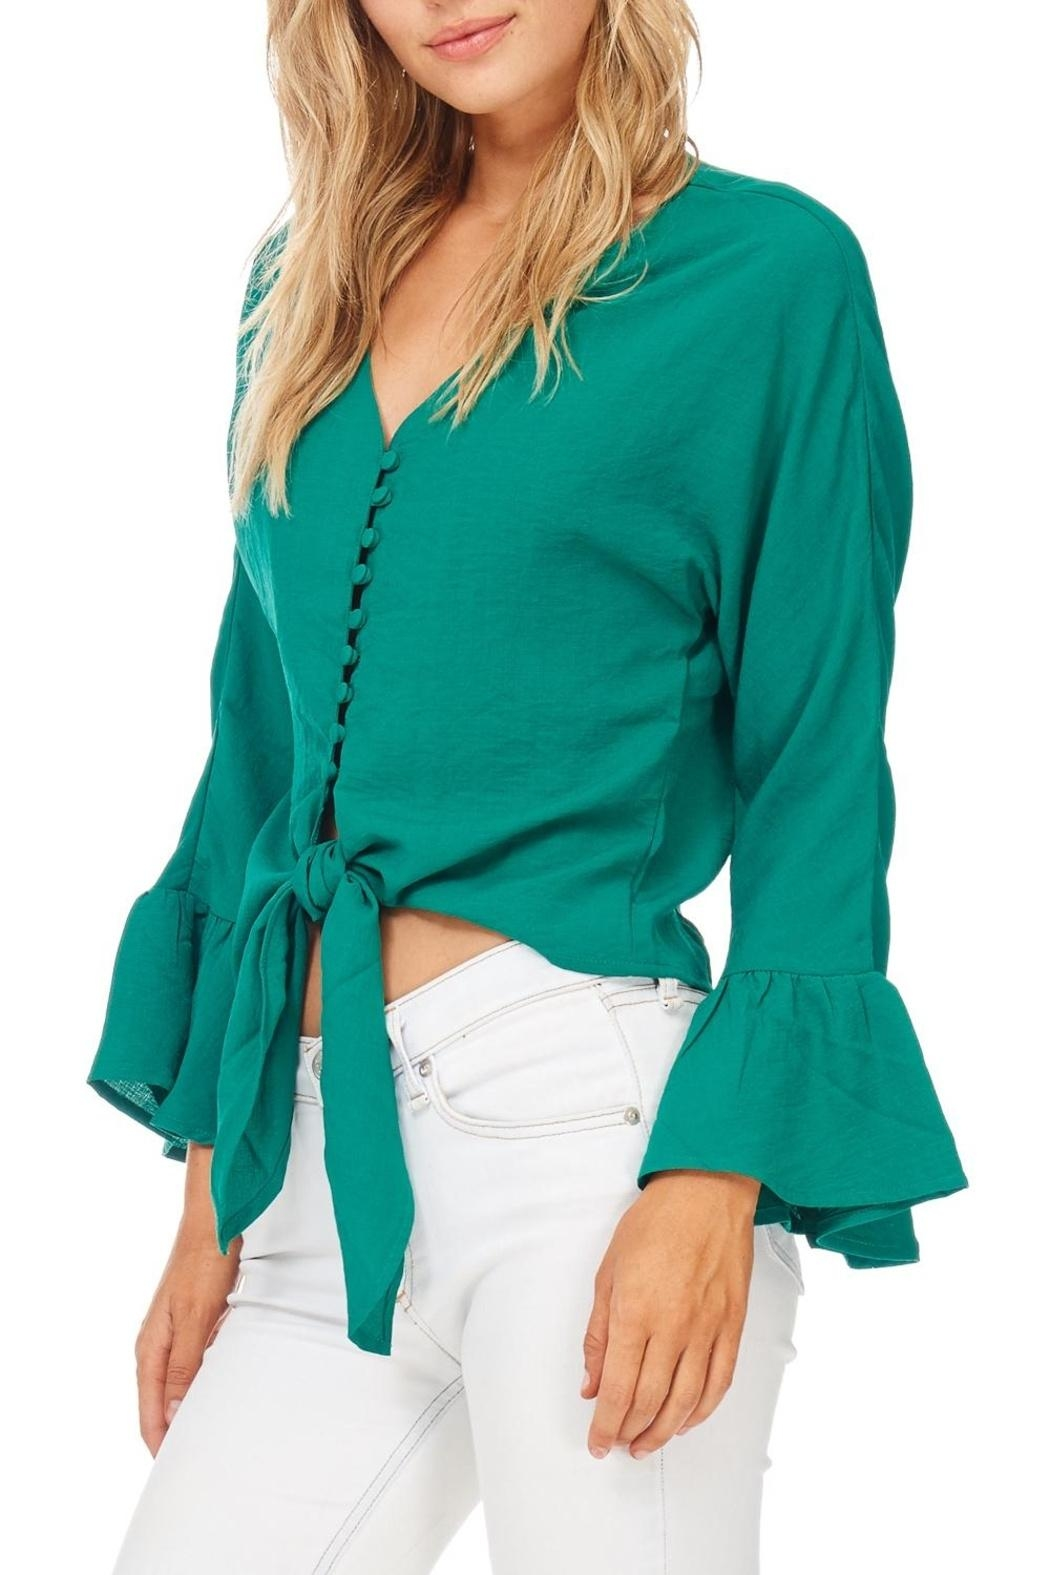 Miss Love Green Front Tie Blouse - Main Image